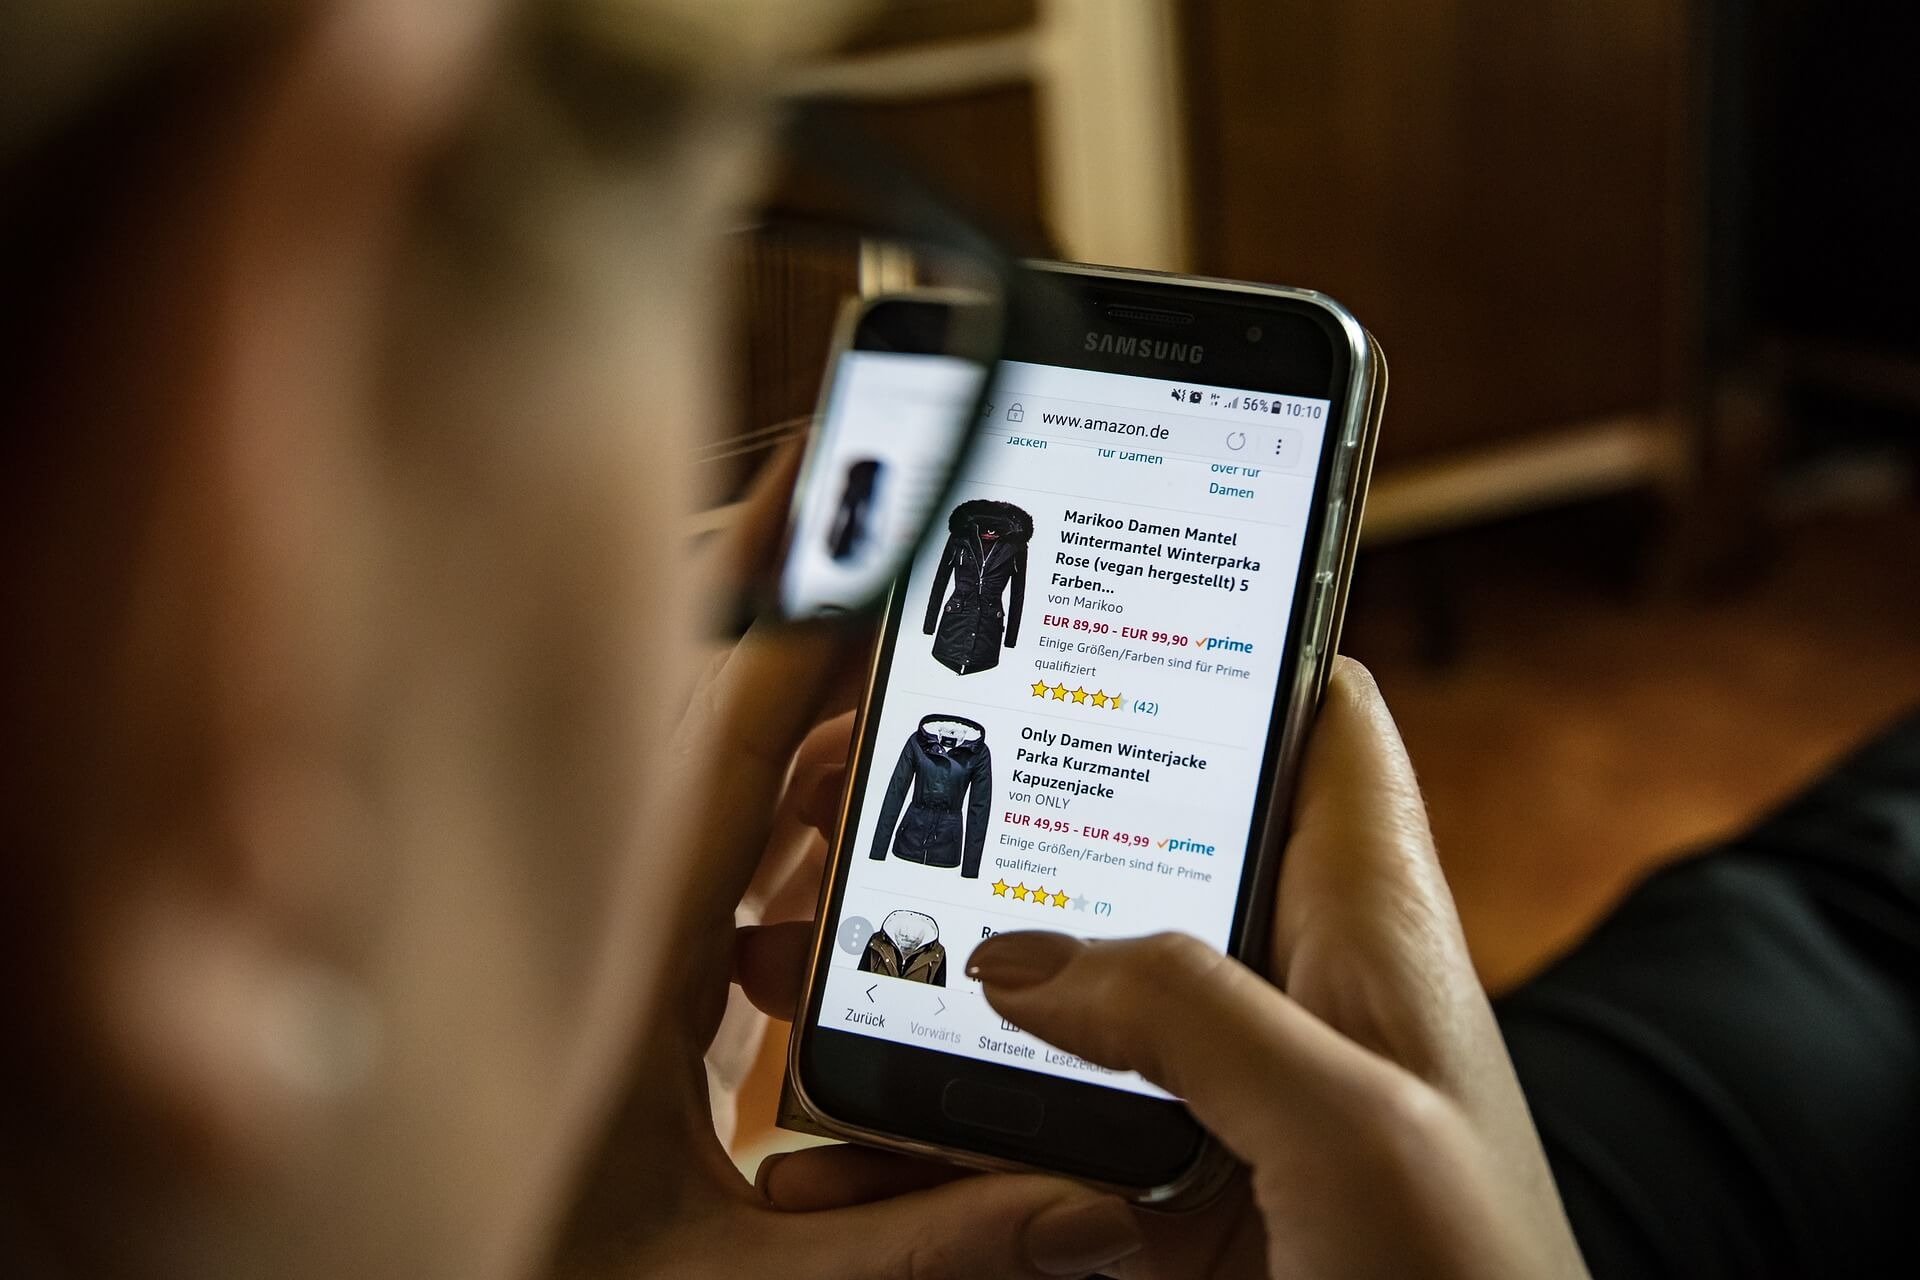 20 Optimization Tips for Ecommerce Product Page Design and Testing